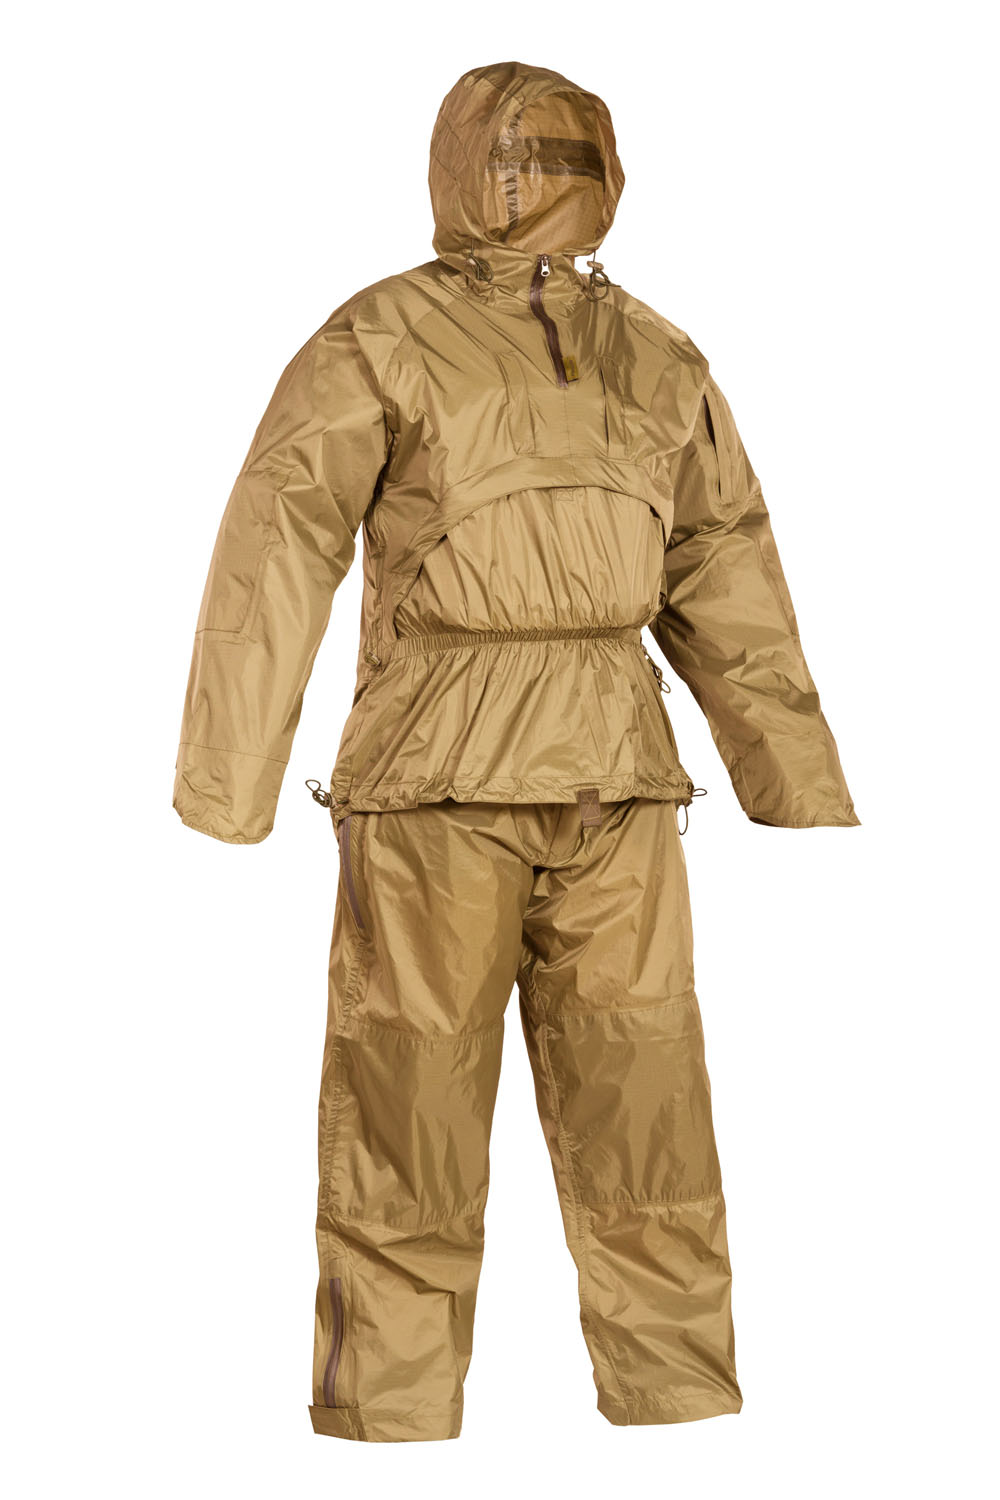 Lightweight waterproof summer suit